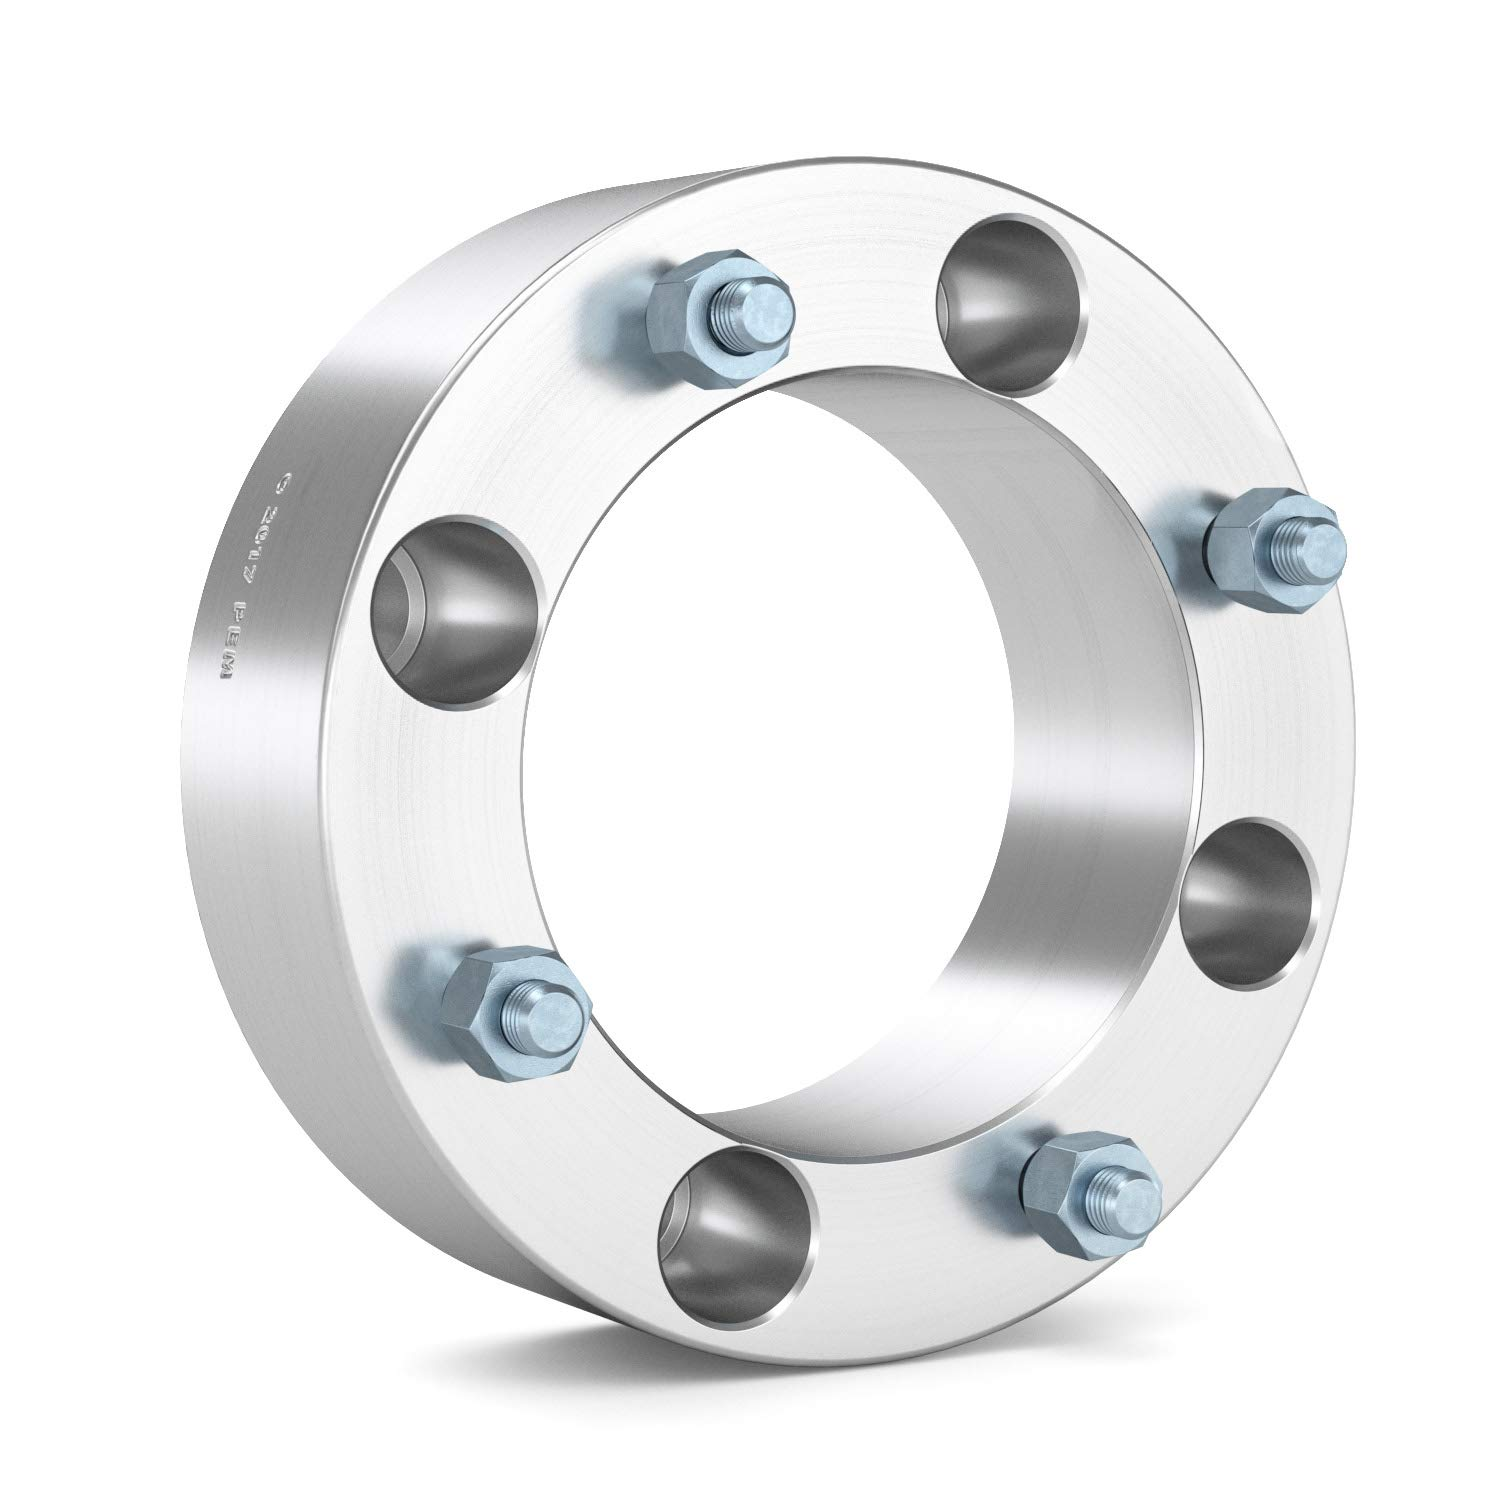 RockTrix for Precision European (4) 2'' Thick 4x137 ATV Wheel Spacers - 10x1.25 Studs for Kawasaki Can Am Can-Am: Brute Force Mule Outlander Commander Maverick Renegade Bombardier, bobcat wheel spacers by RockTrix (Image #6)